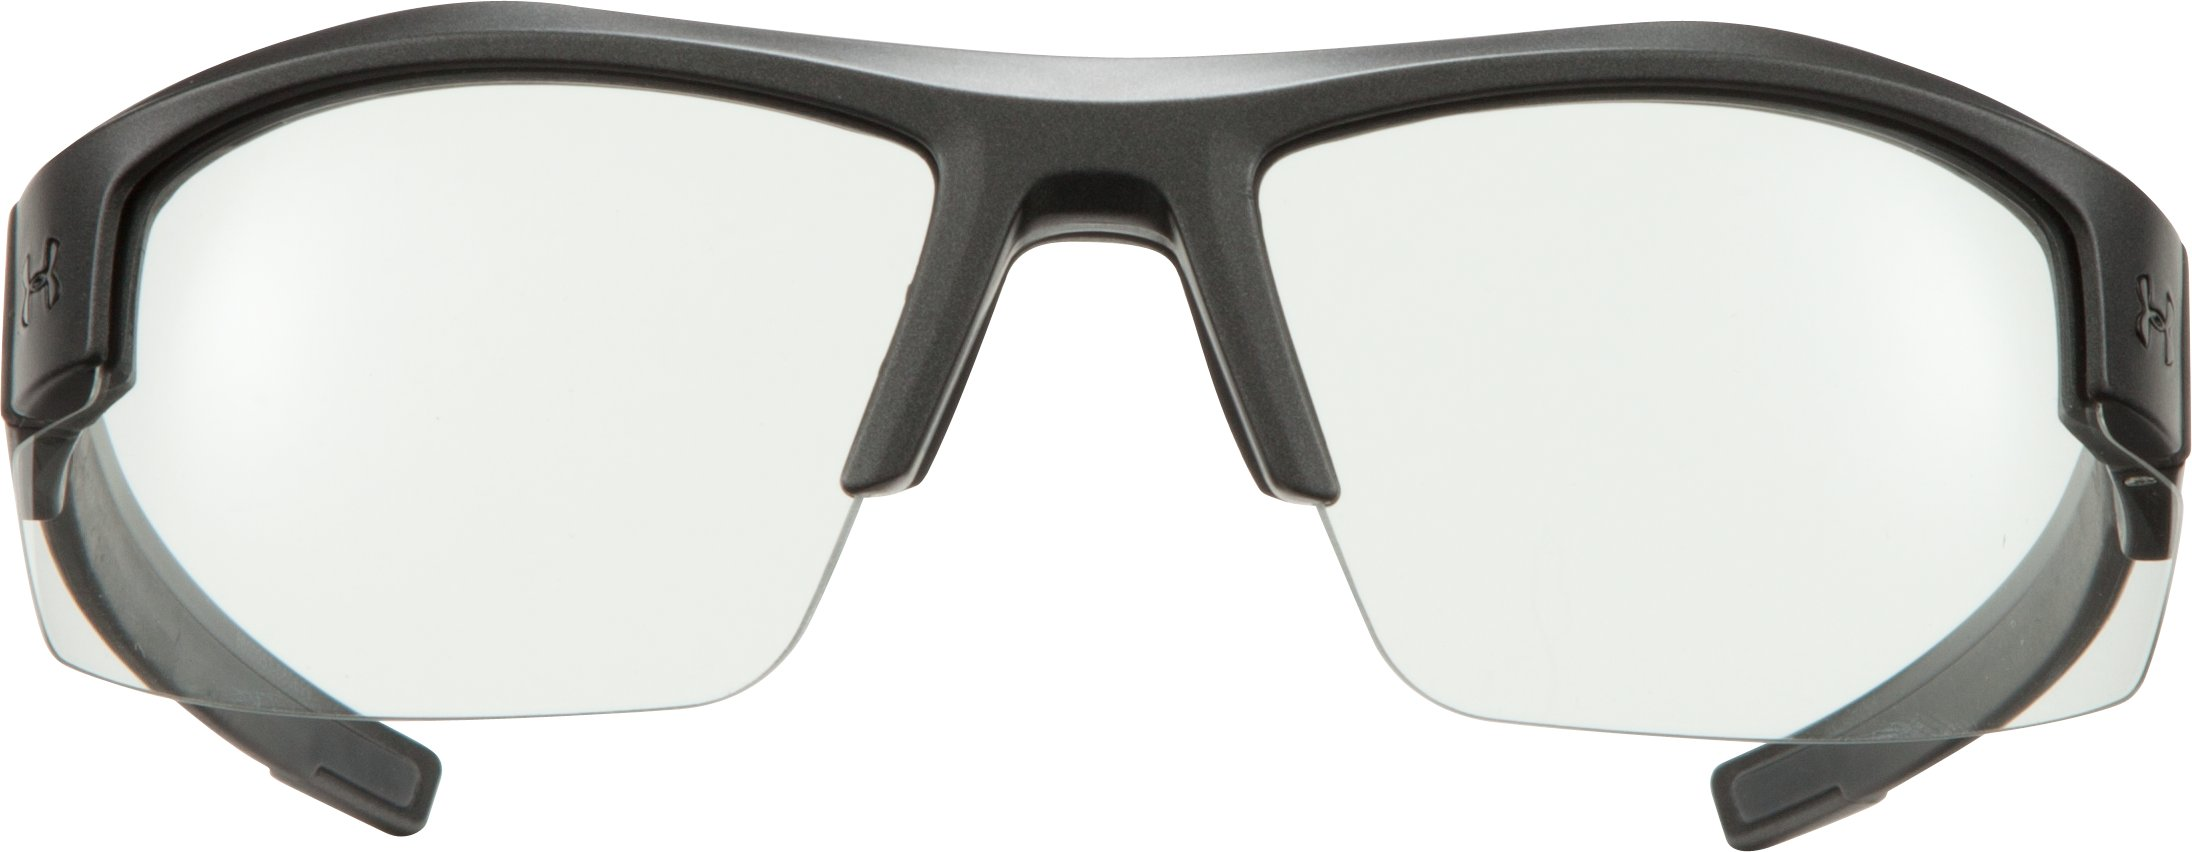 UA Reliance Tactical Sunglasses, Carbon